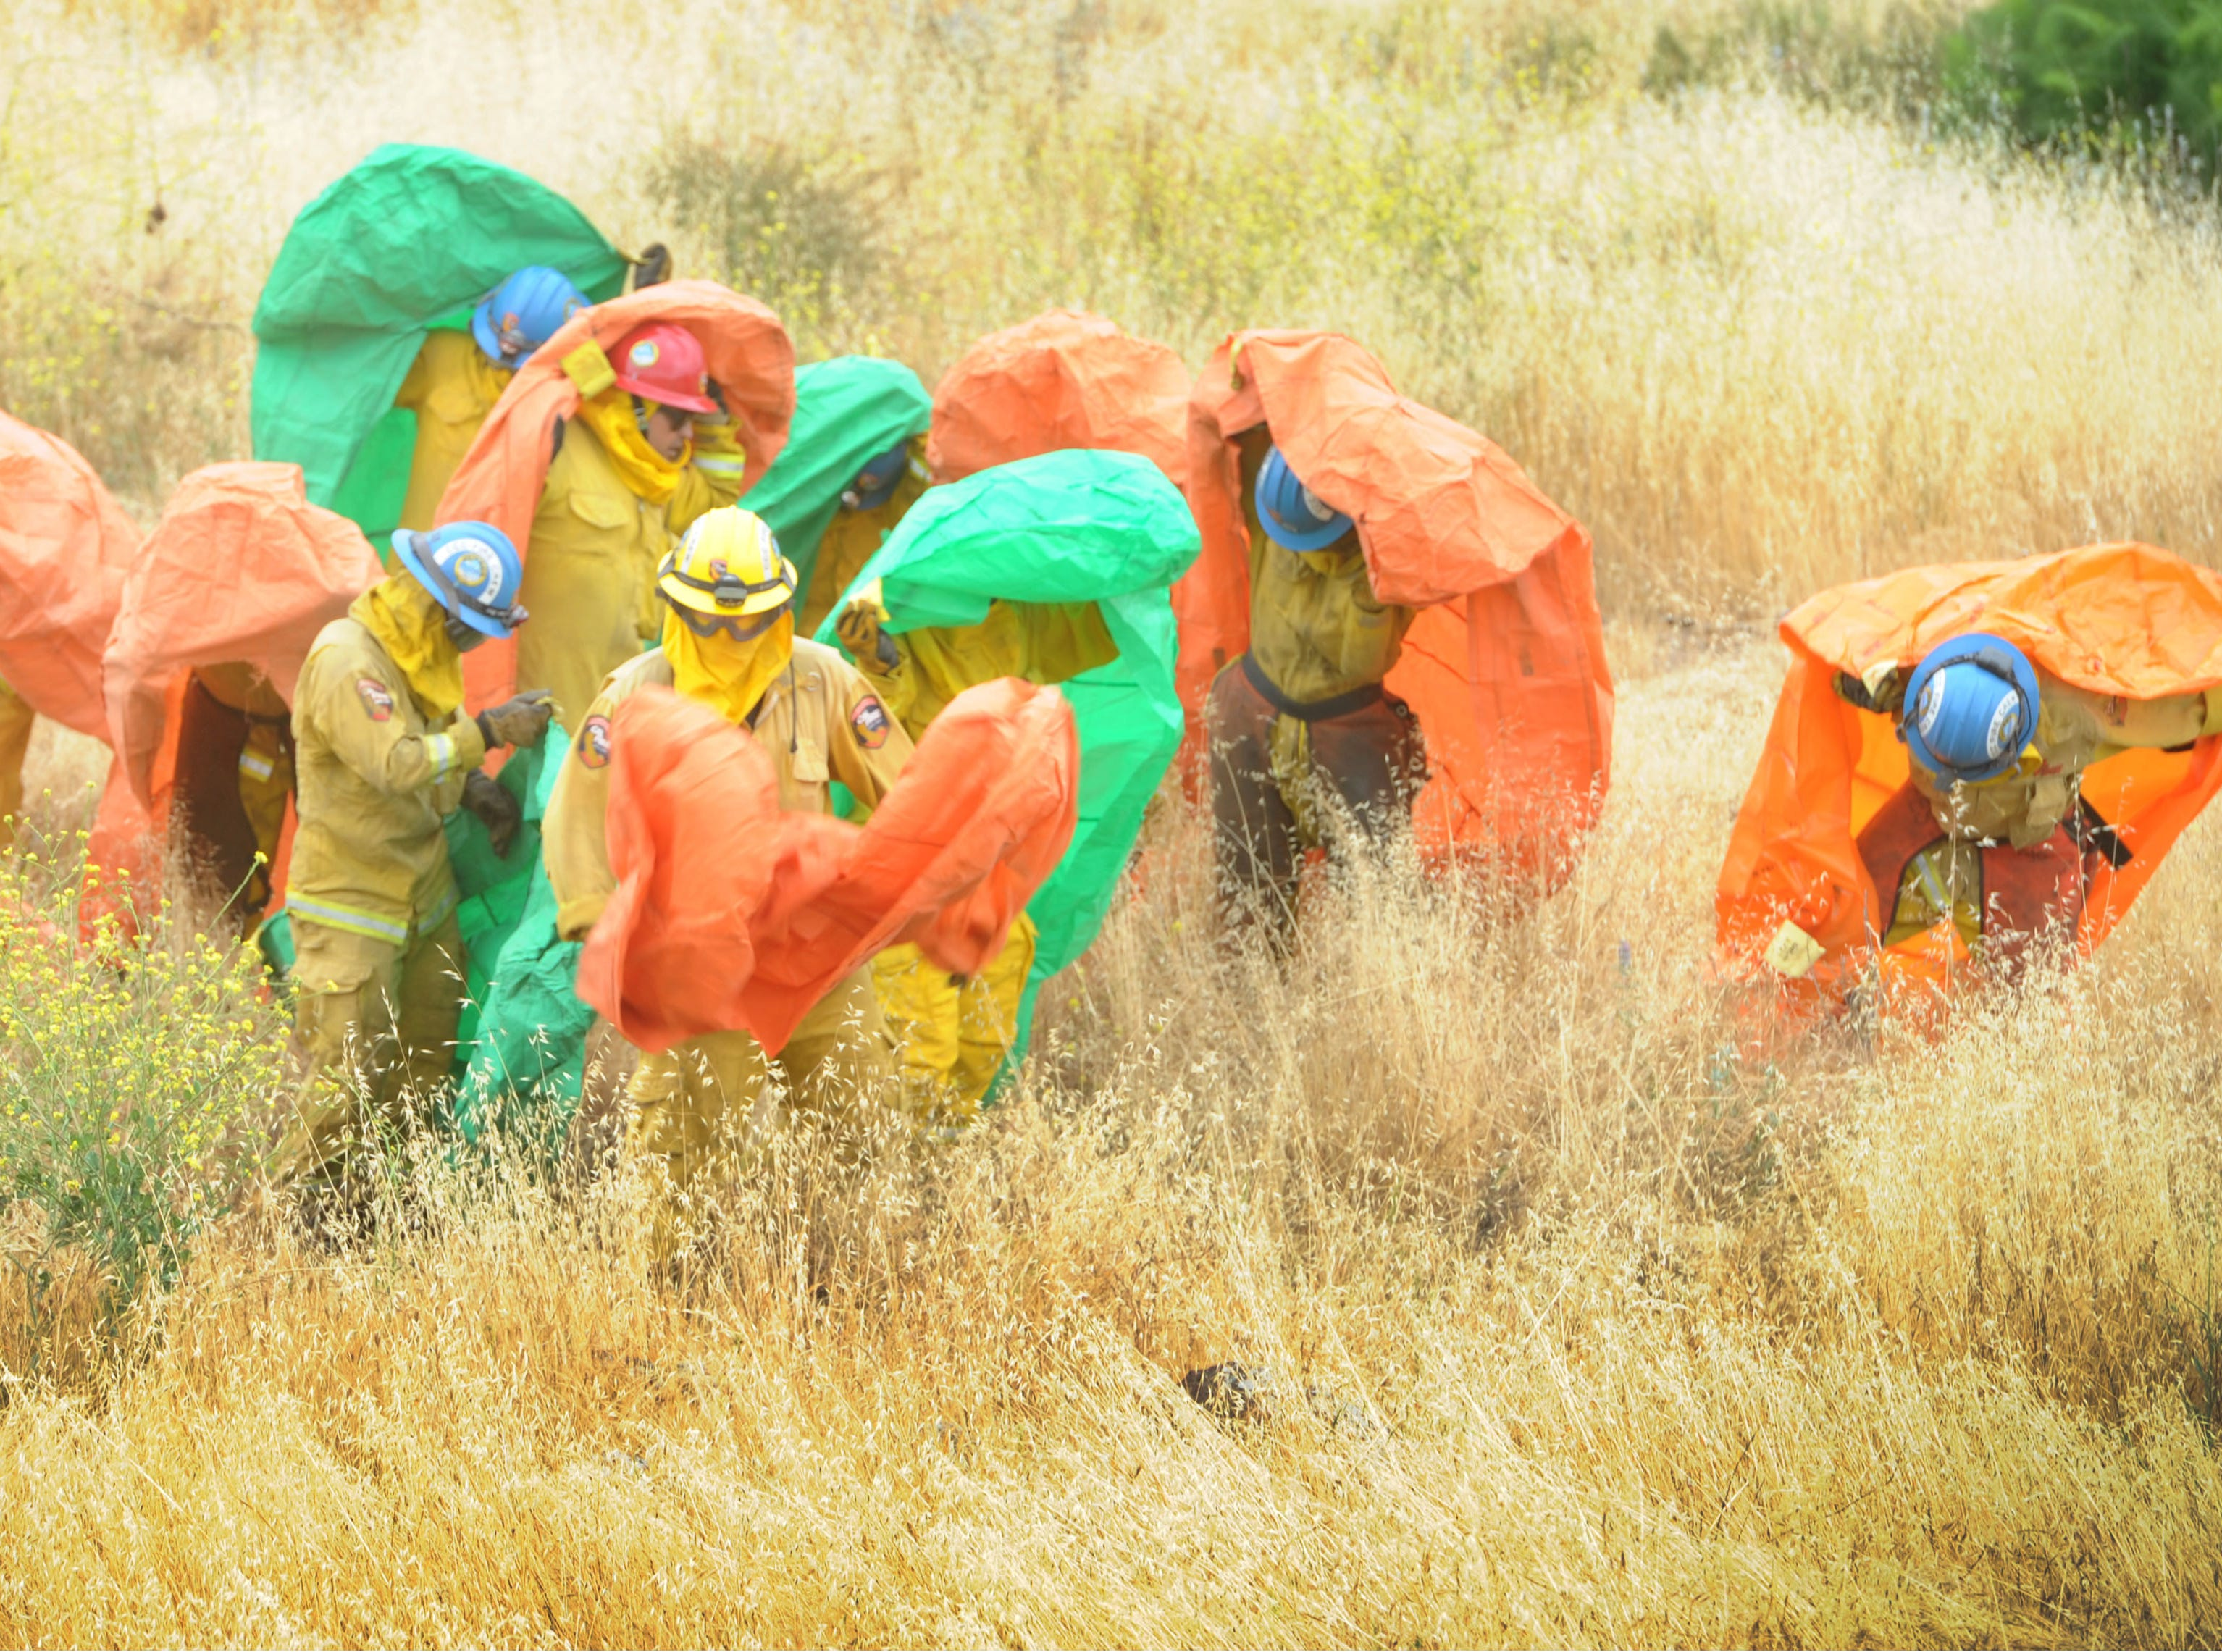 """Hand crews demonstrate how to get into fire shelters Wednesday at the Southern California """"Ready for Wildfires"""" event at the Reagan Library in Simi Valley."""